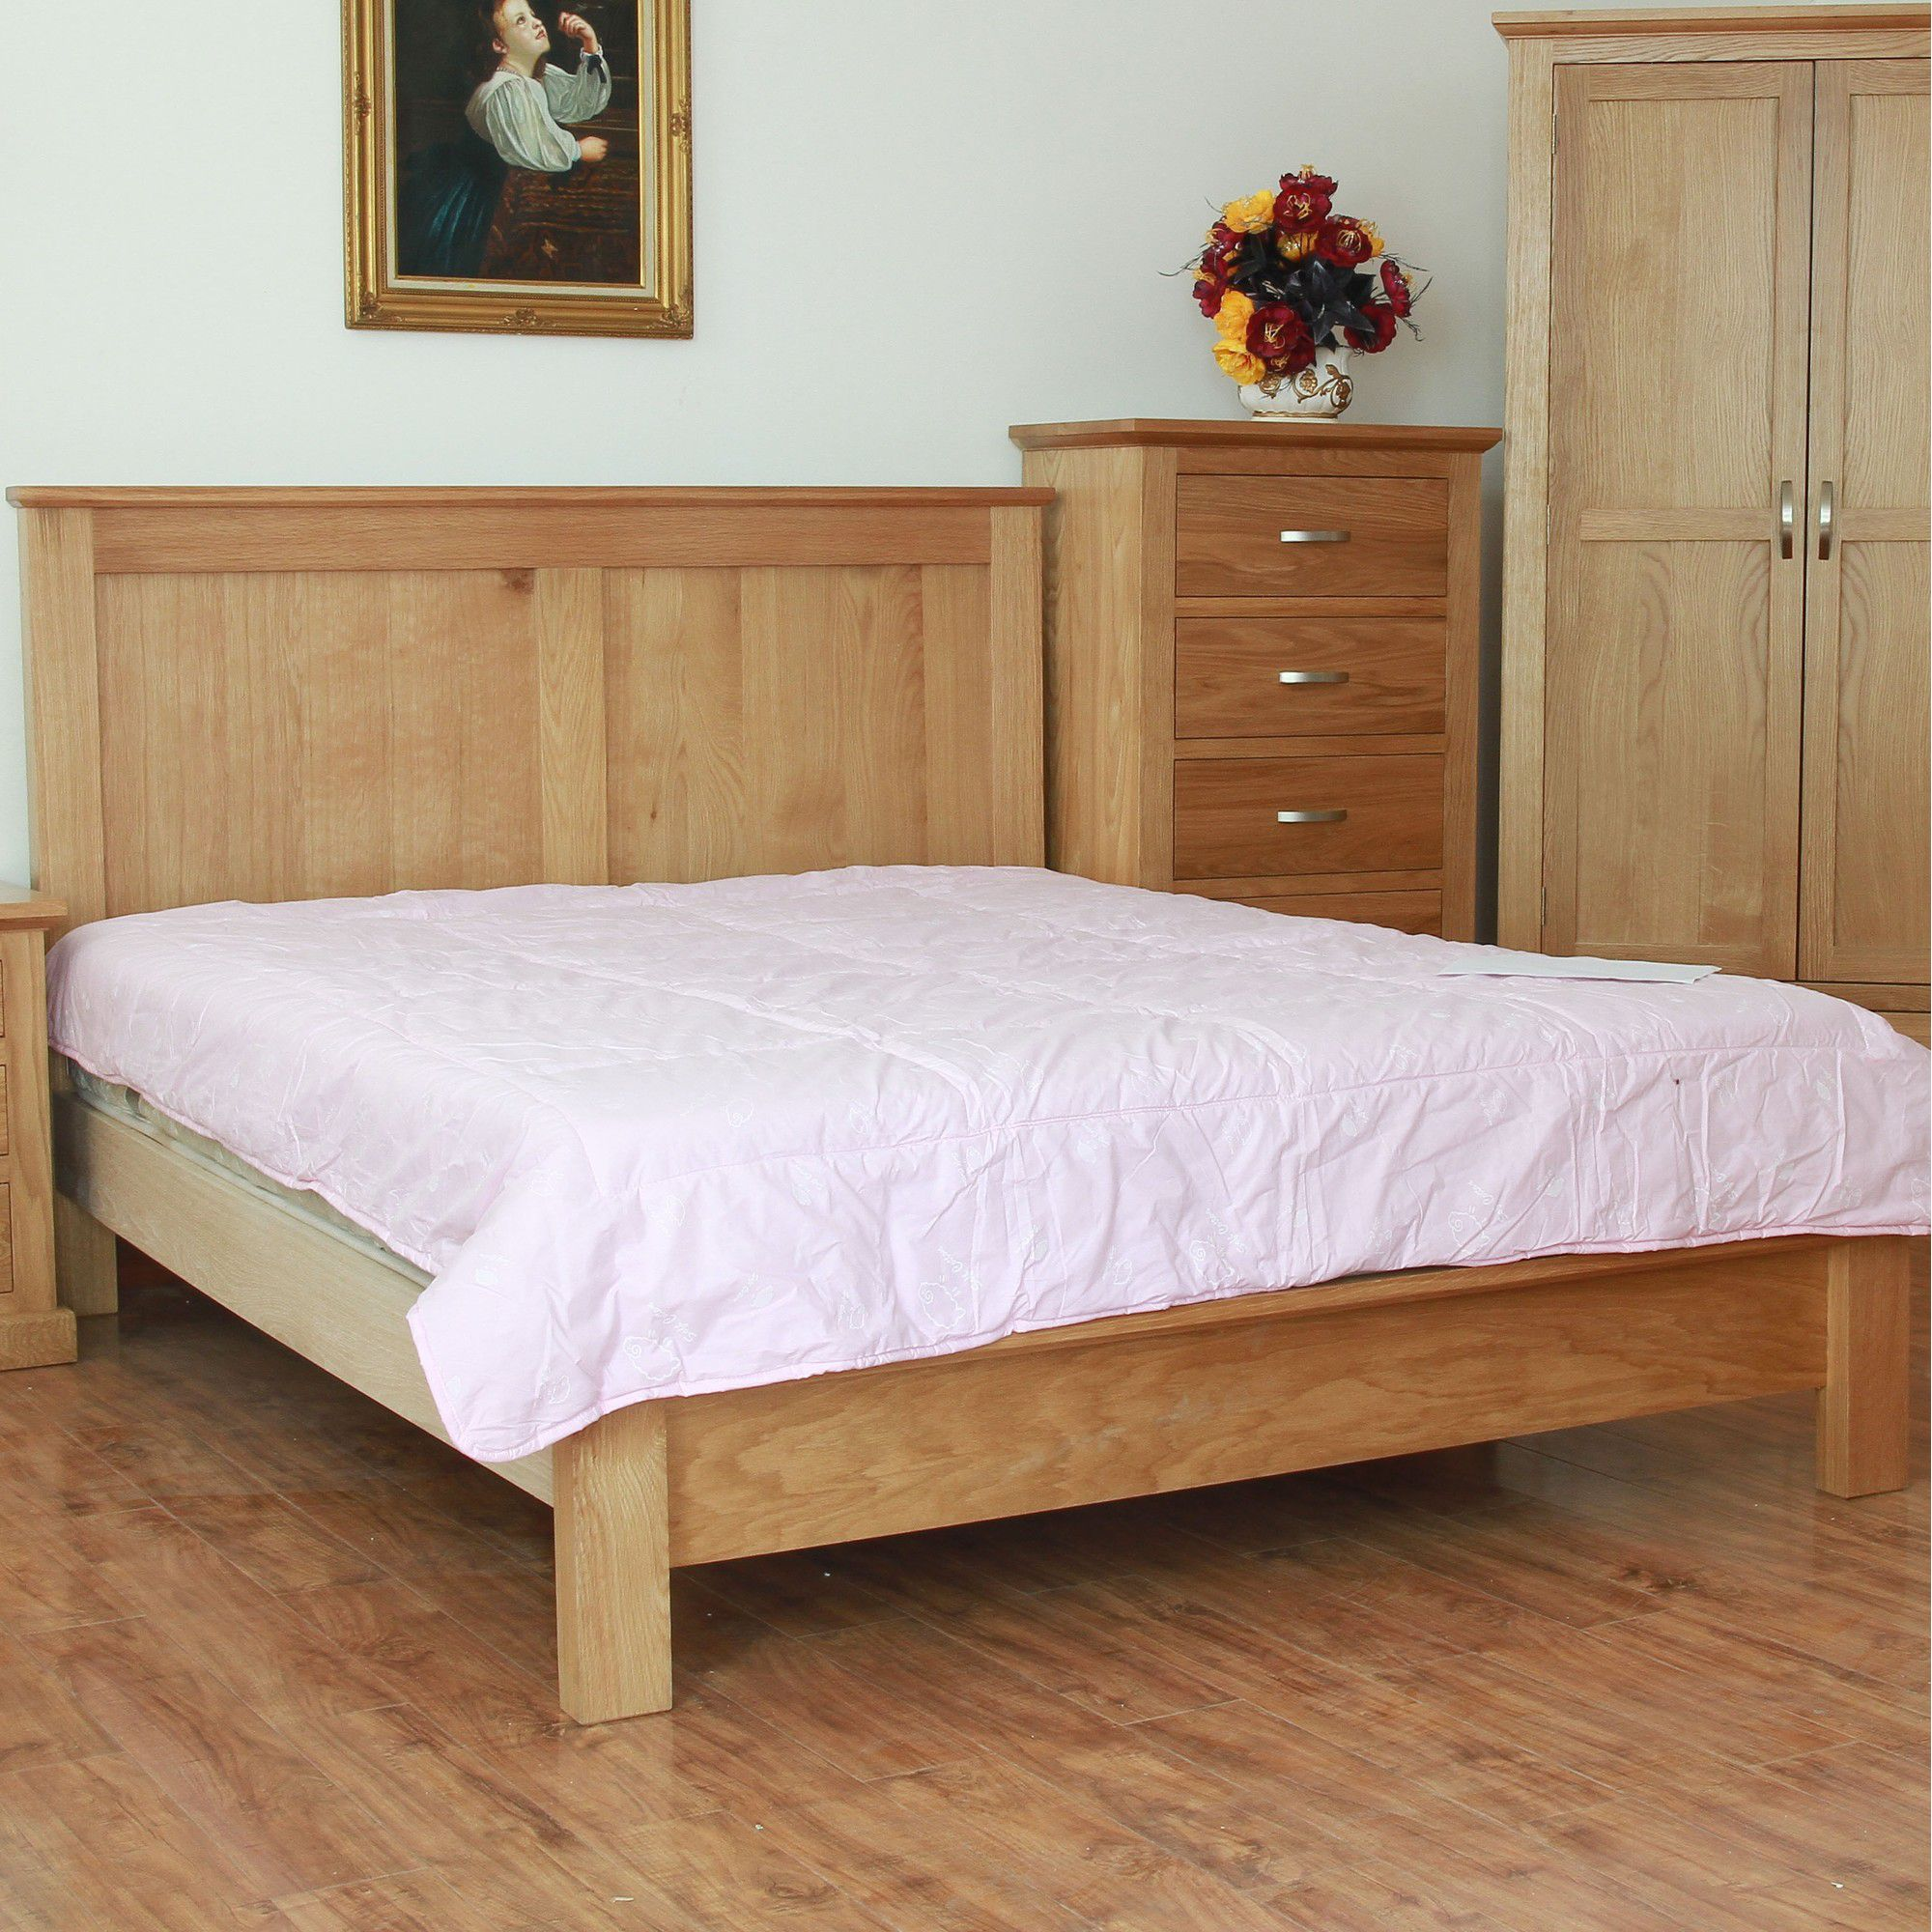 Elements Edmonton Bed Frame - Double at Tescos Direct